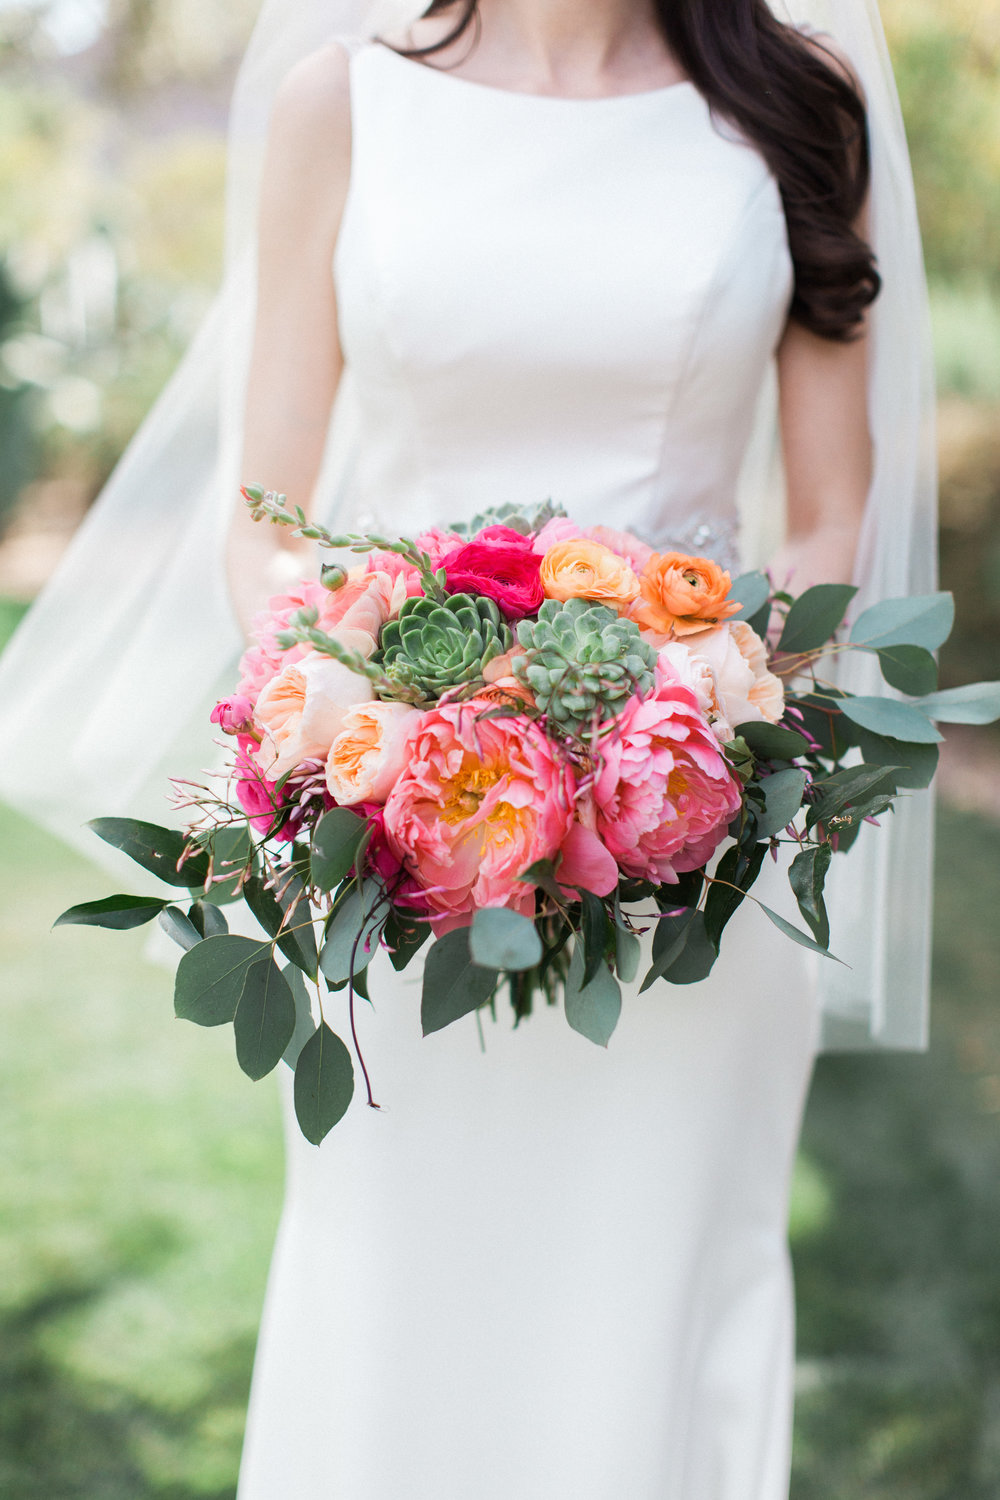 wedding bouquet, wedding planner, phoenix wedding, scottsdale wedding, arizona wedding, arizona wedding planner, destination wedding